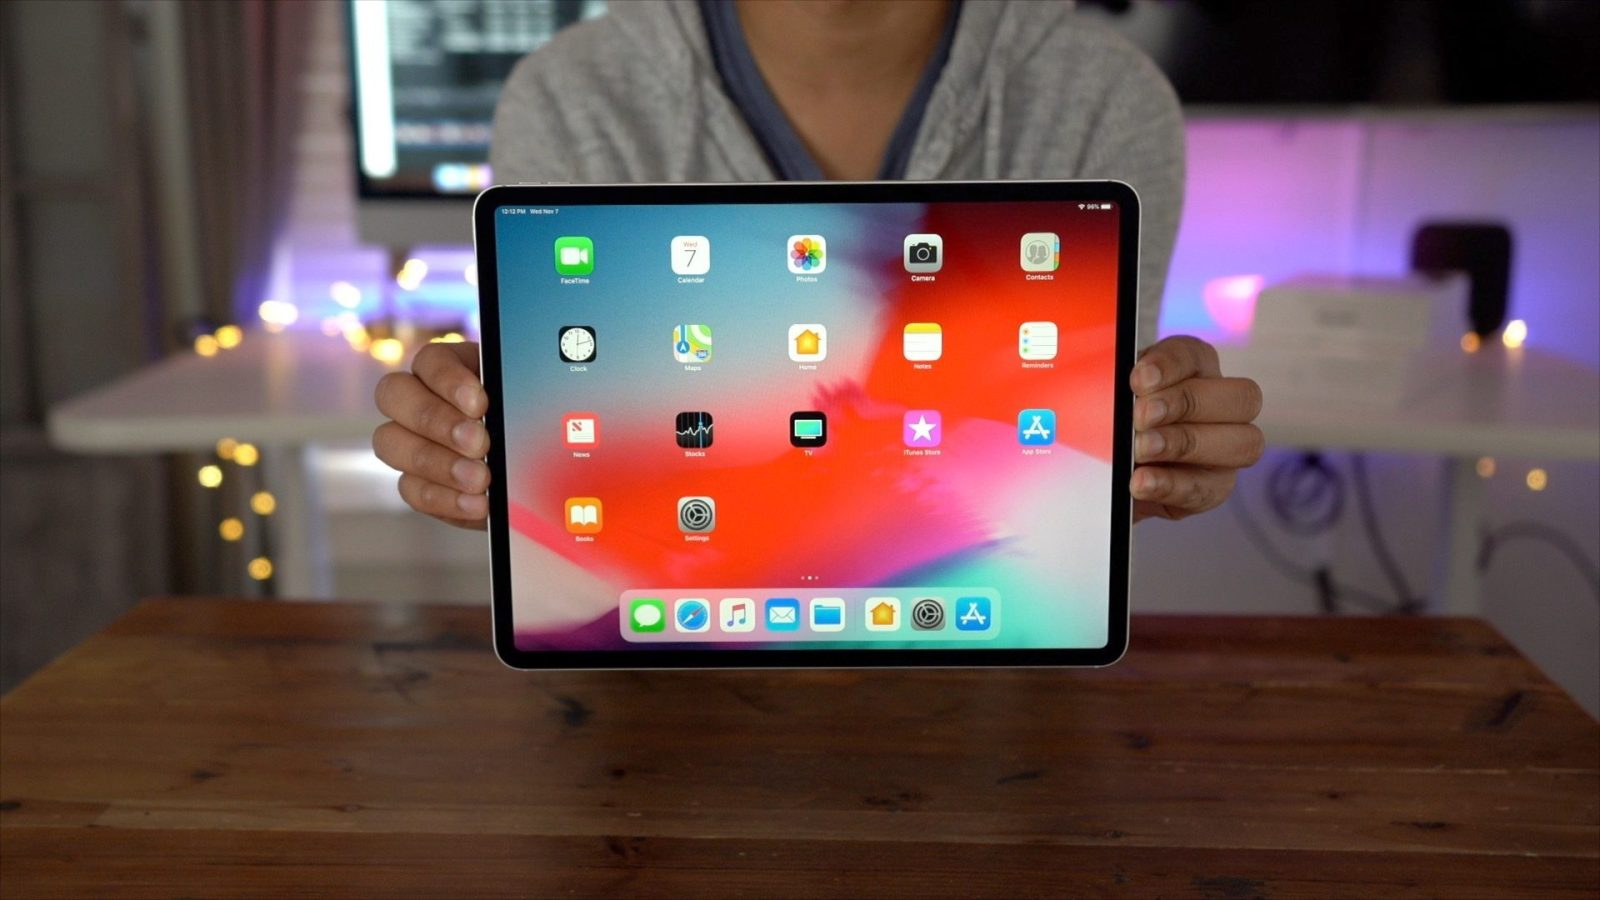 How to turn off iPad Pro - 9to5Mac